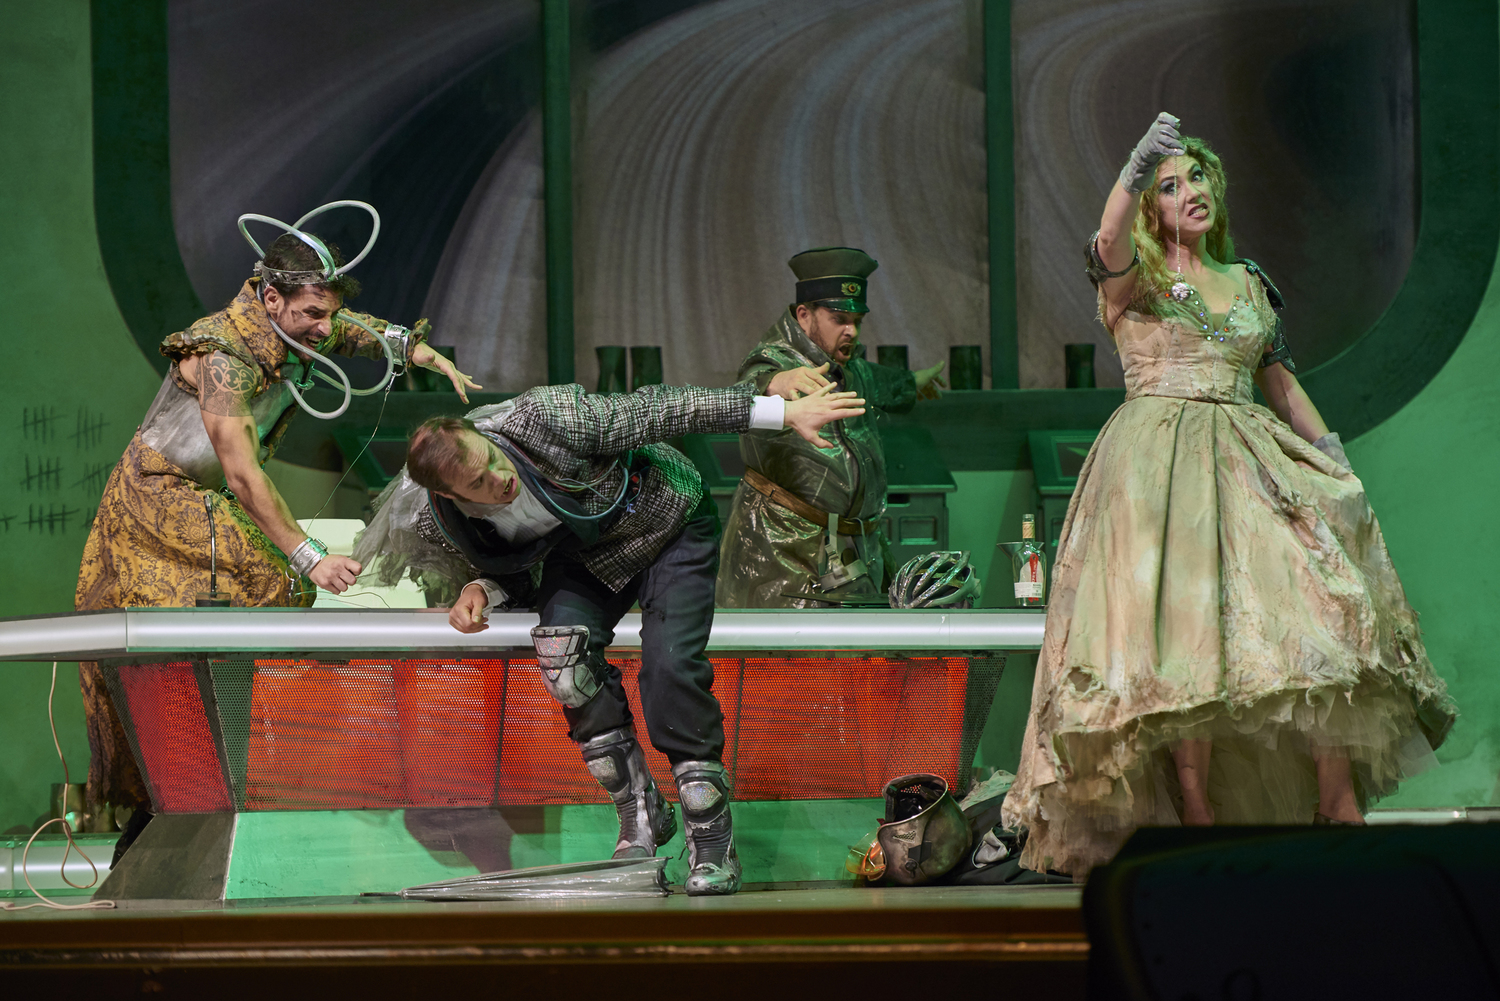 BWW Review: DIE FLEDERMAUS at Deutsche Oper Berlin - An ABC Production (an Amateurish, Boring Catastrophe) directed by former operatic tenor, Rolando Villazón